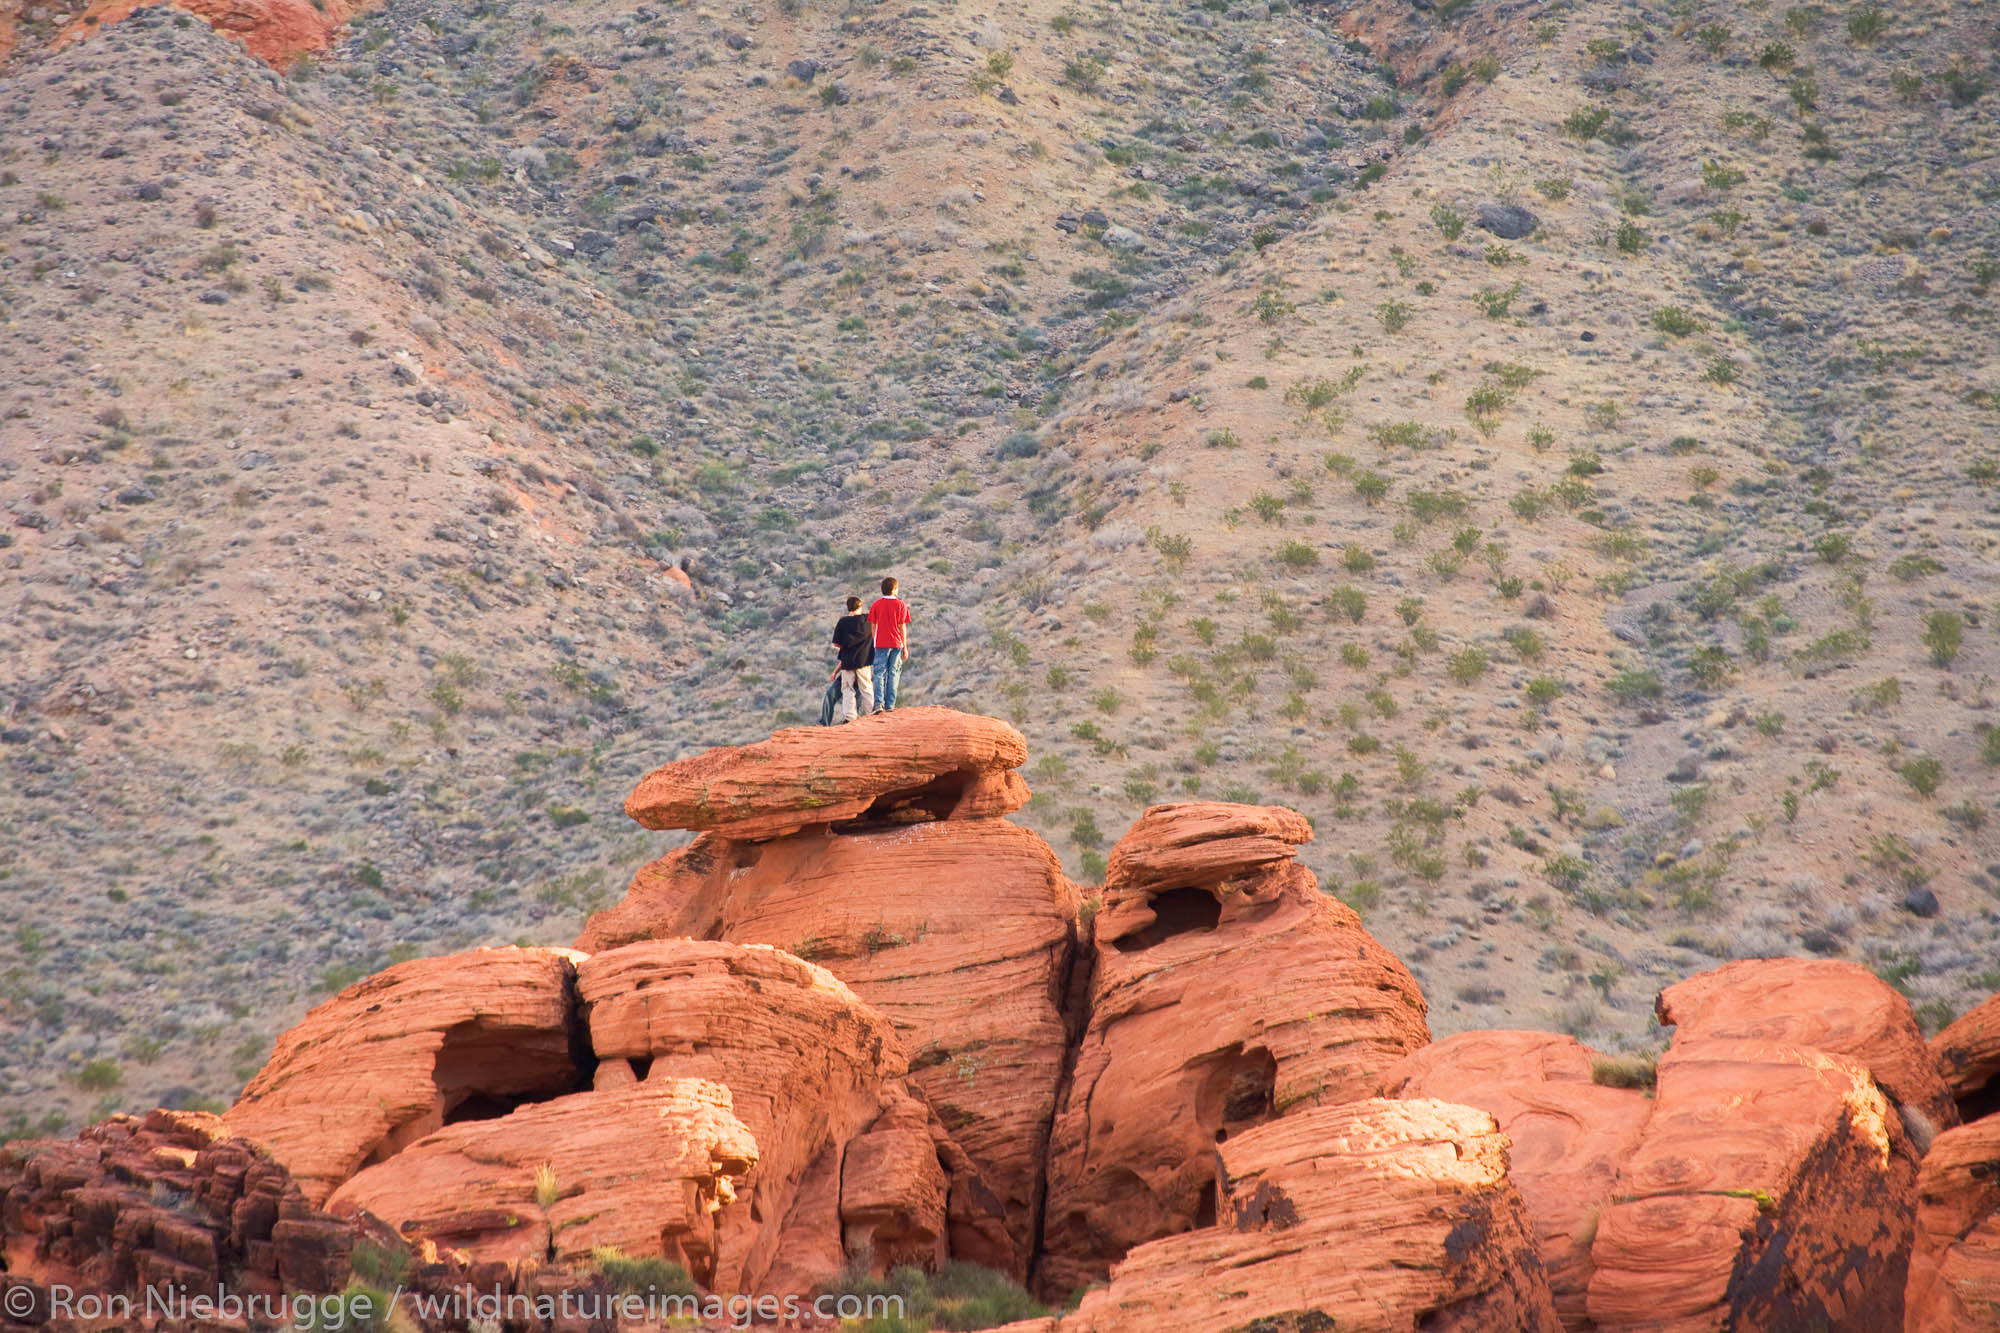 Visitors in the Valley of Fire State Park, Nevada